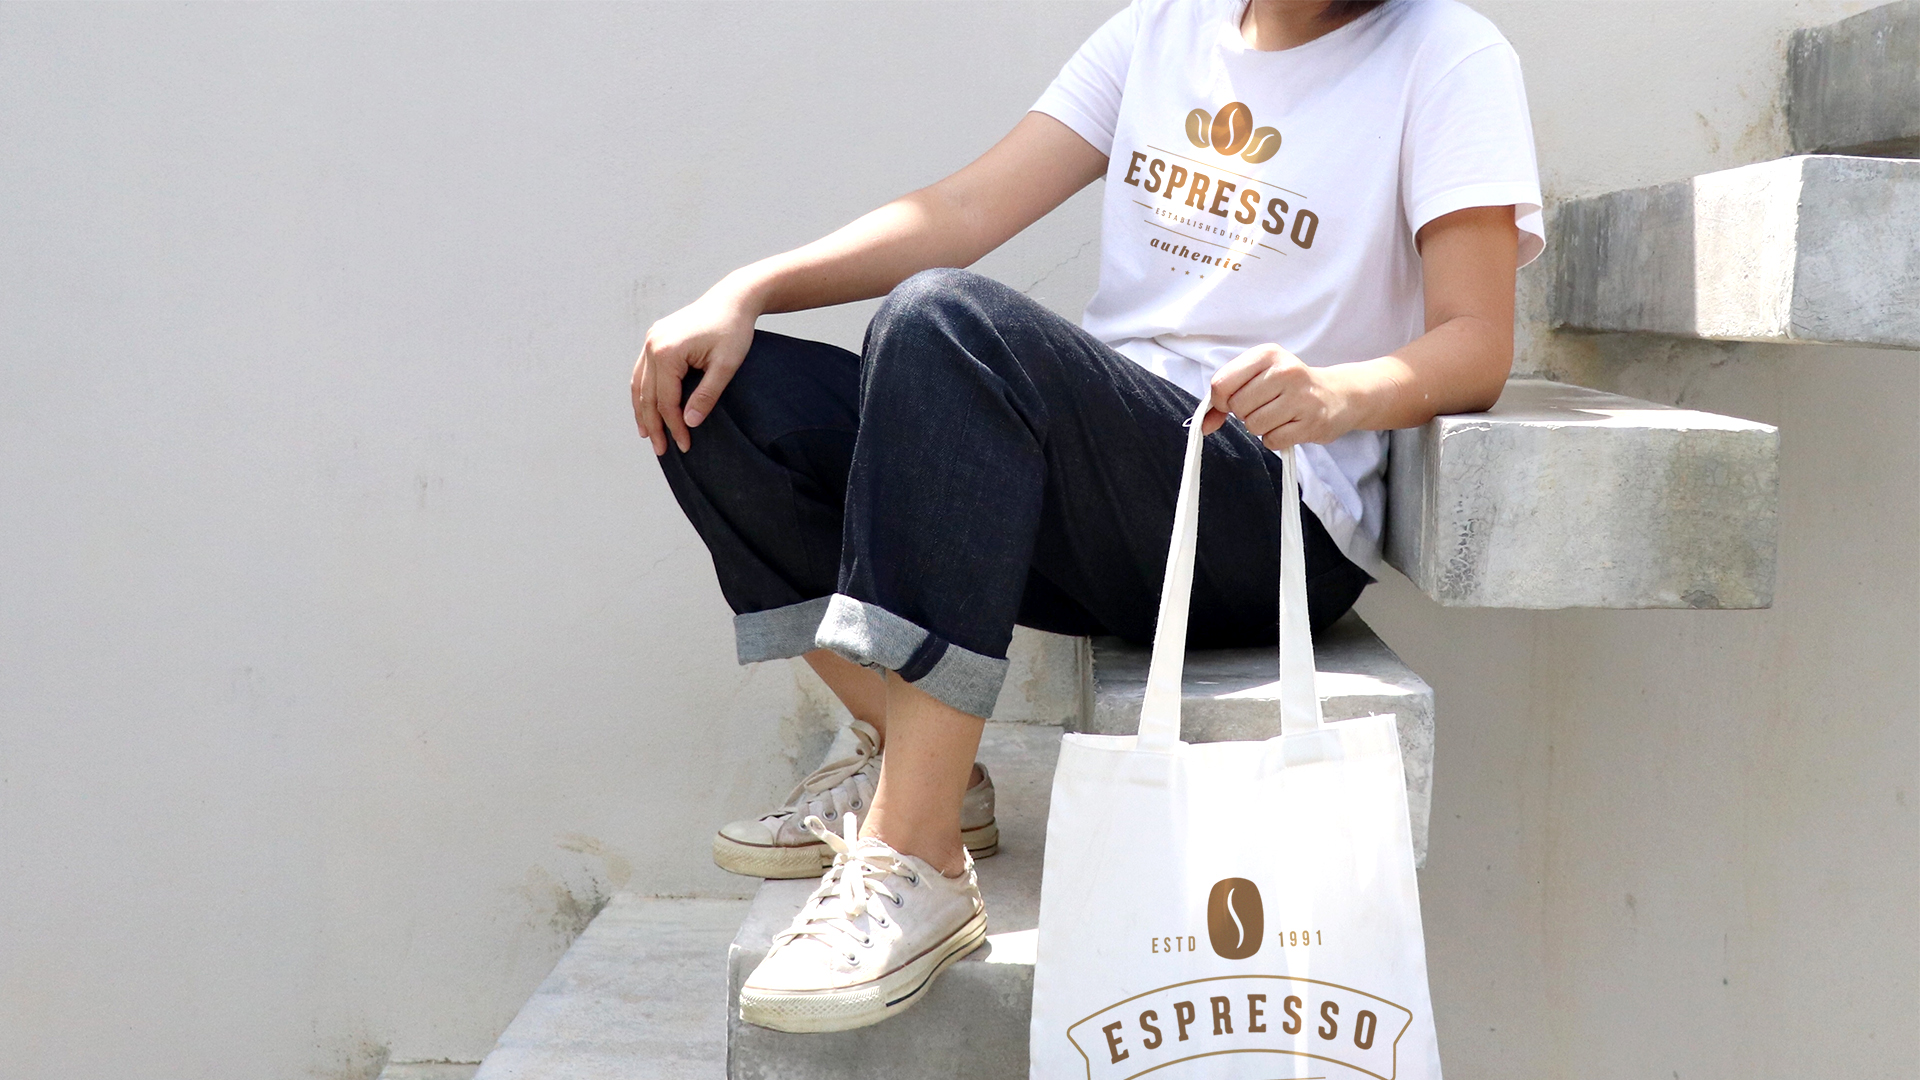 A person sits on some steps, wearing a screen printed t-shirt and holding a screen printed tote bag. Both items display a coffee shop logo, a great example of custom merchandise.